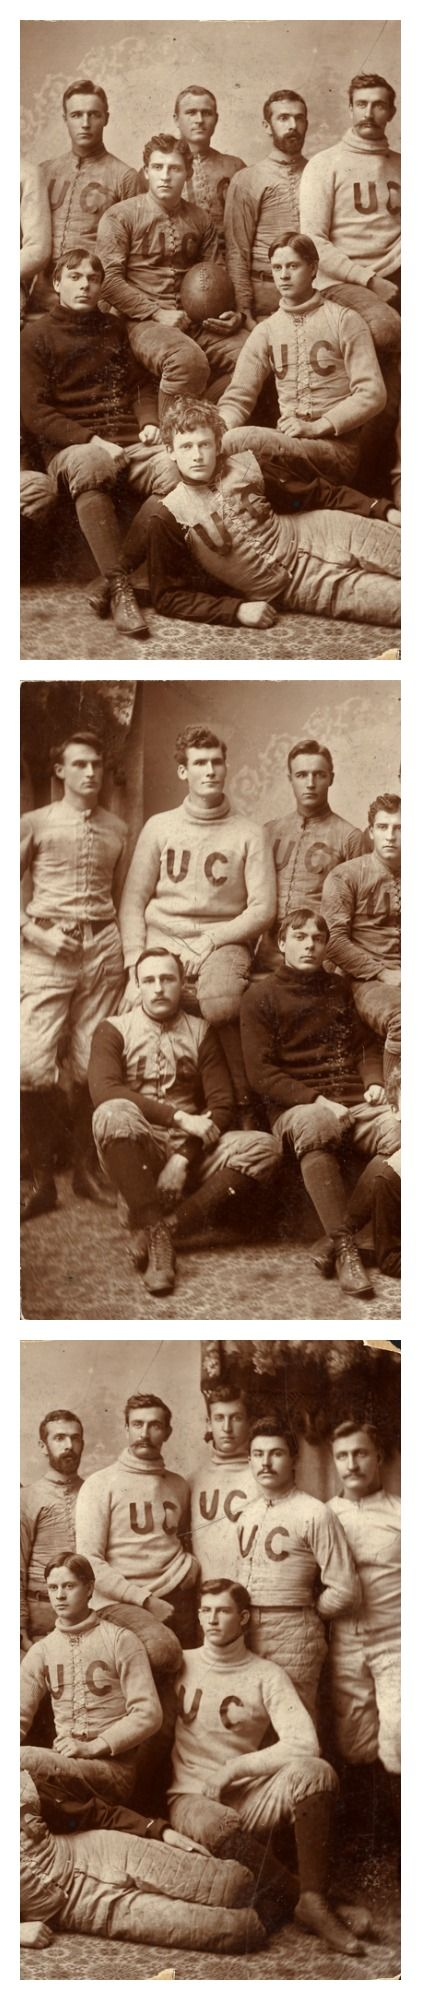 Some handsome vintage fellas! University of Chicago Football Team, 1892.